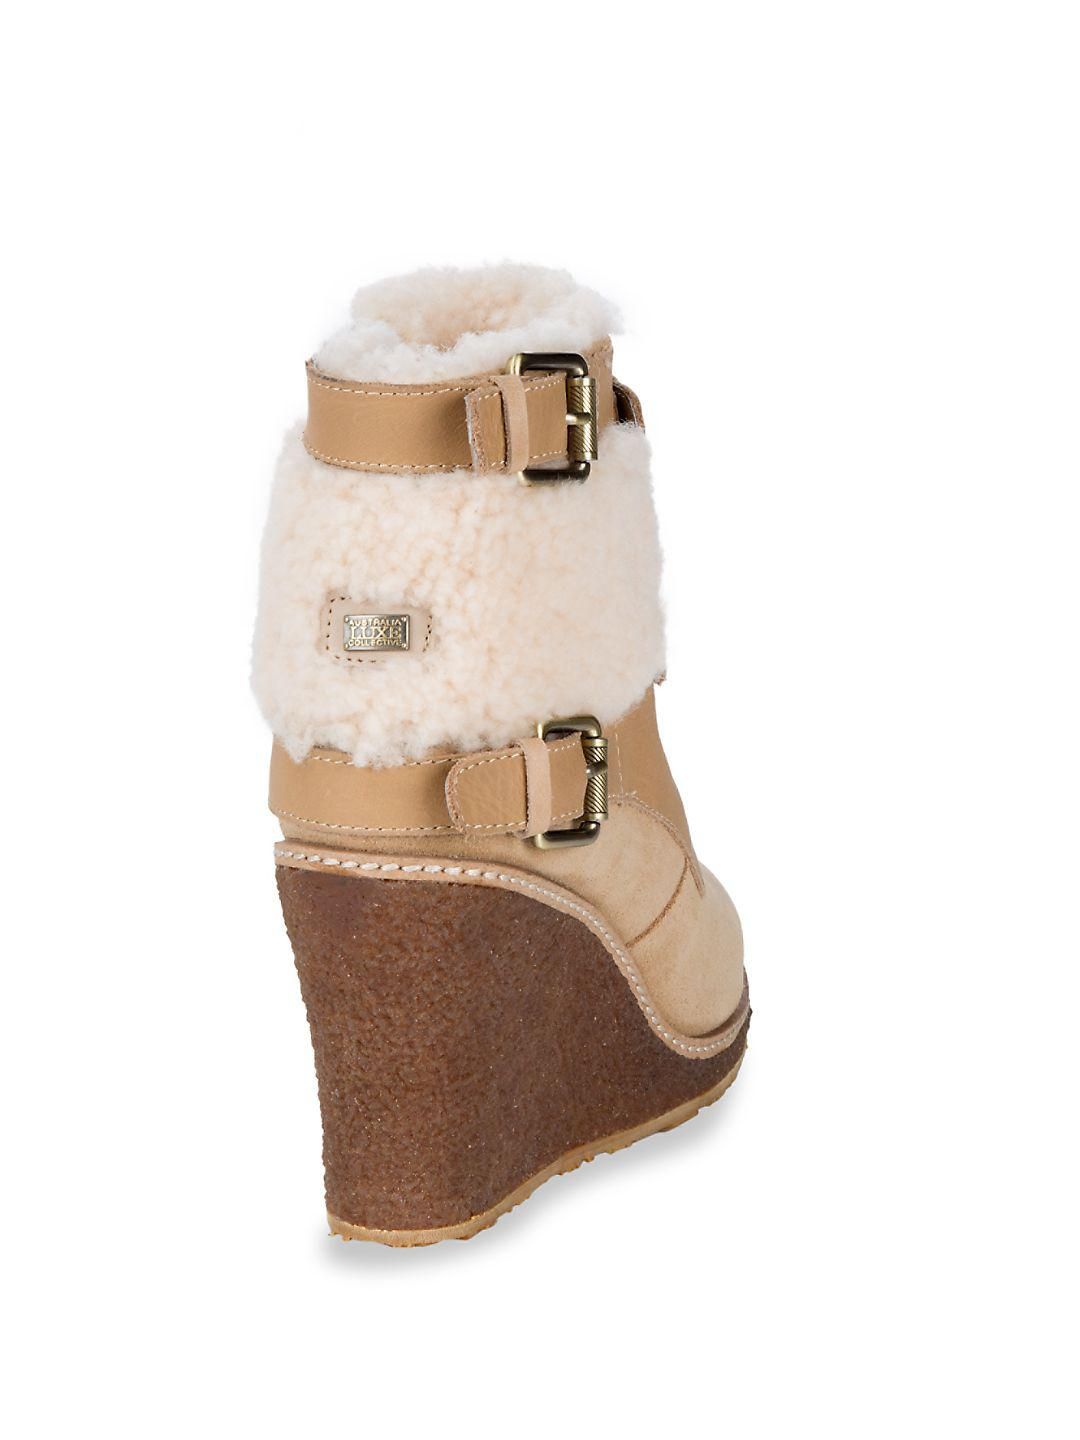 d415f3520d68 Lyst - Australian Luxe Collective Monk Strap Shearling Wedge Boots ...